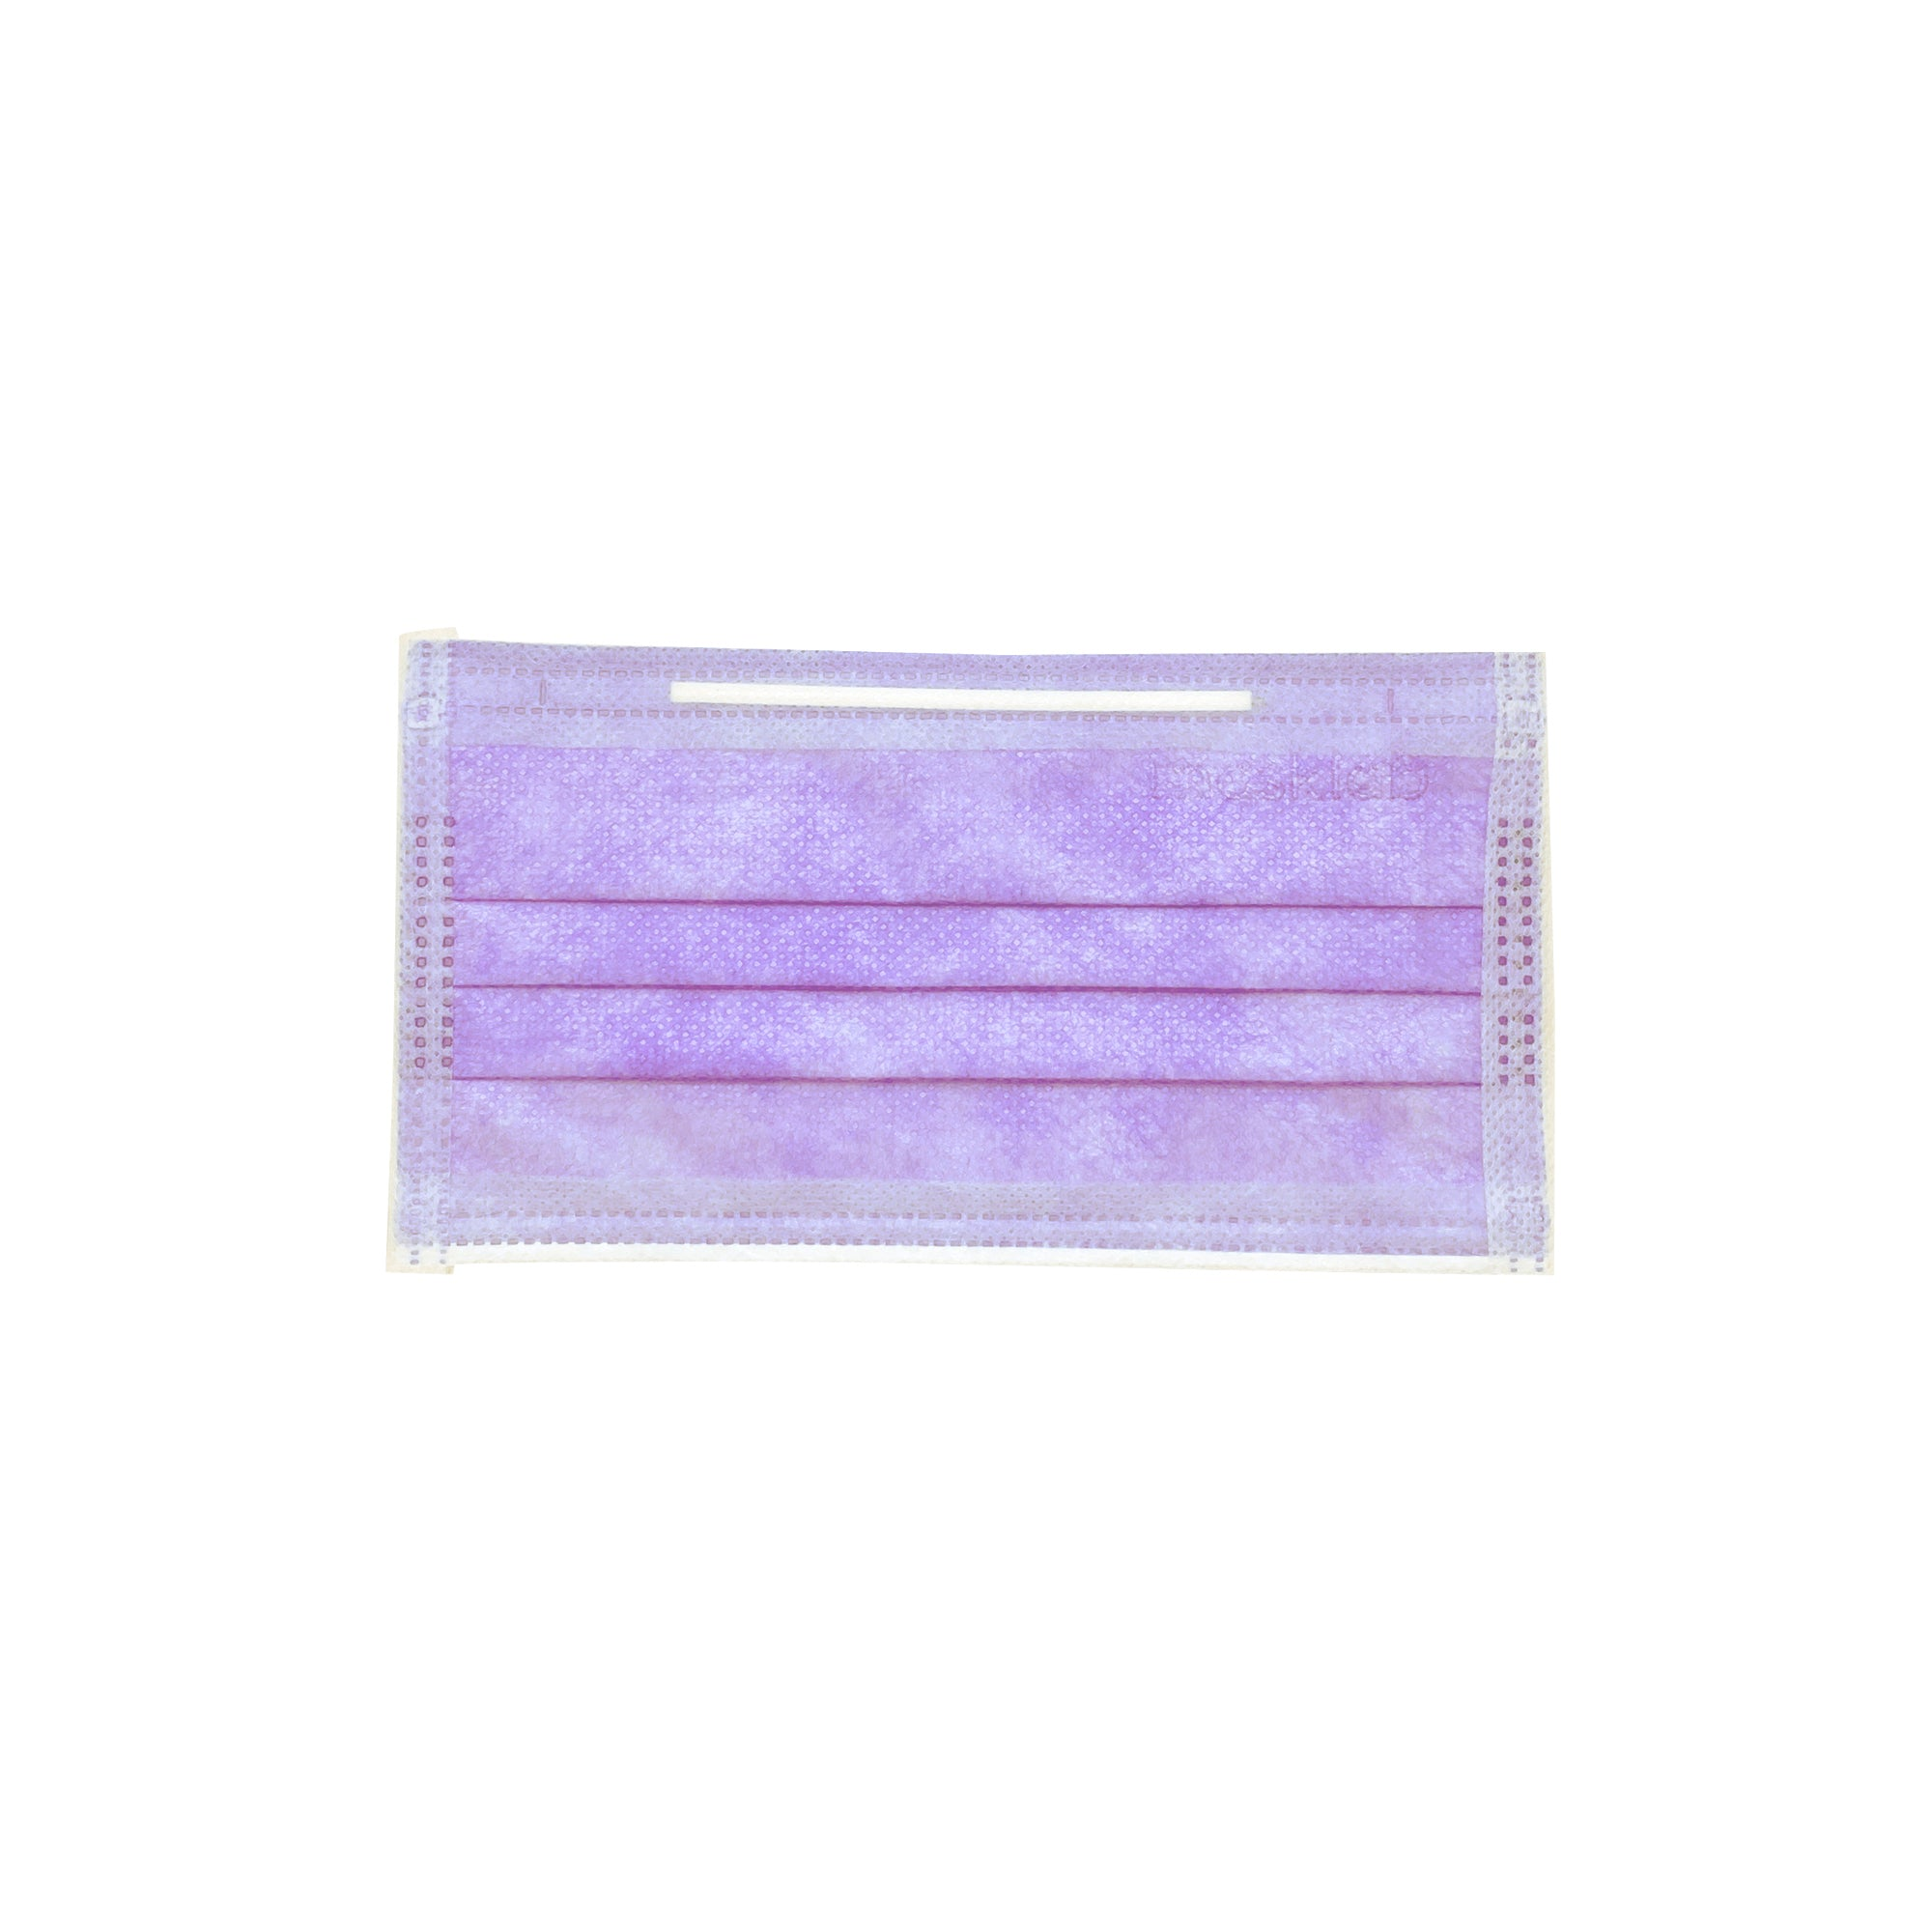 PURPLE 3-PLY SURGICAL FACE MASK (50-PACK)